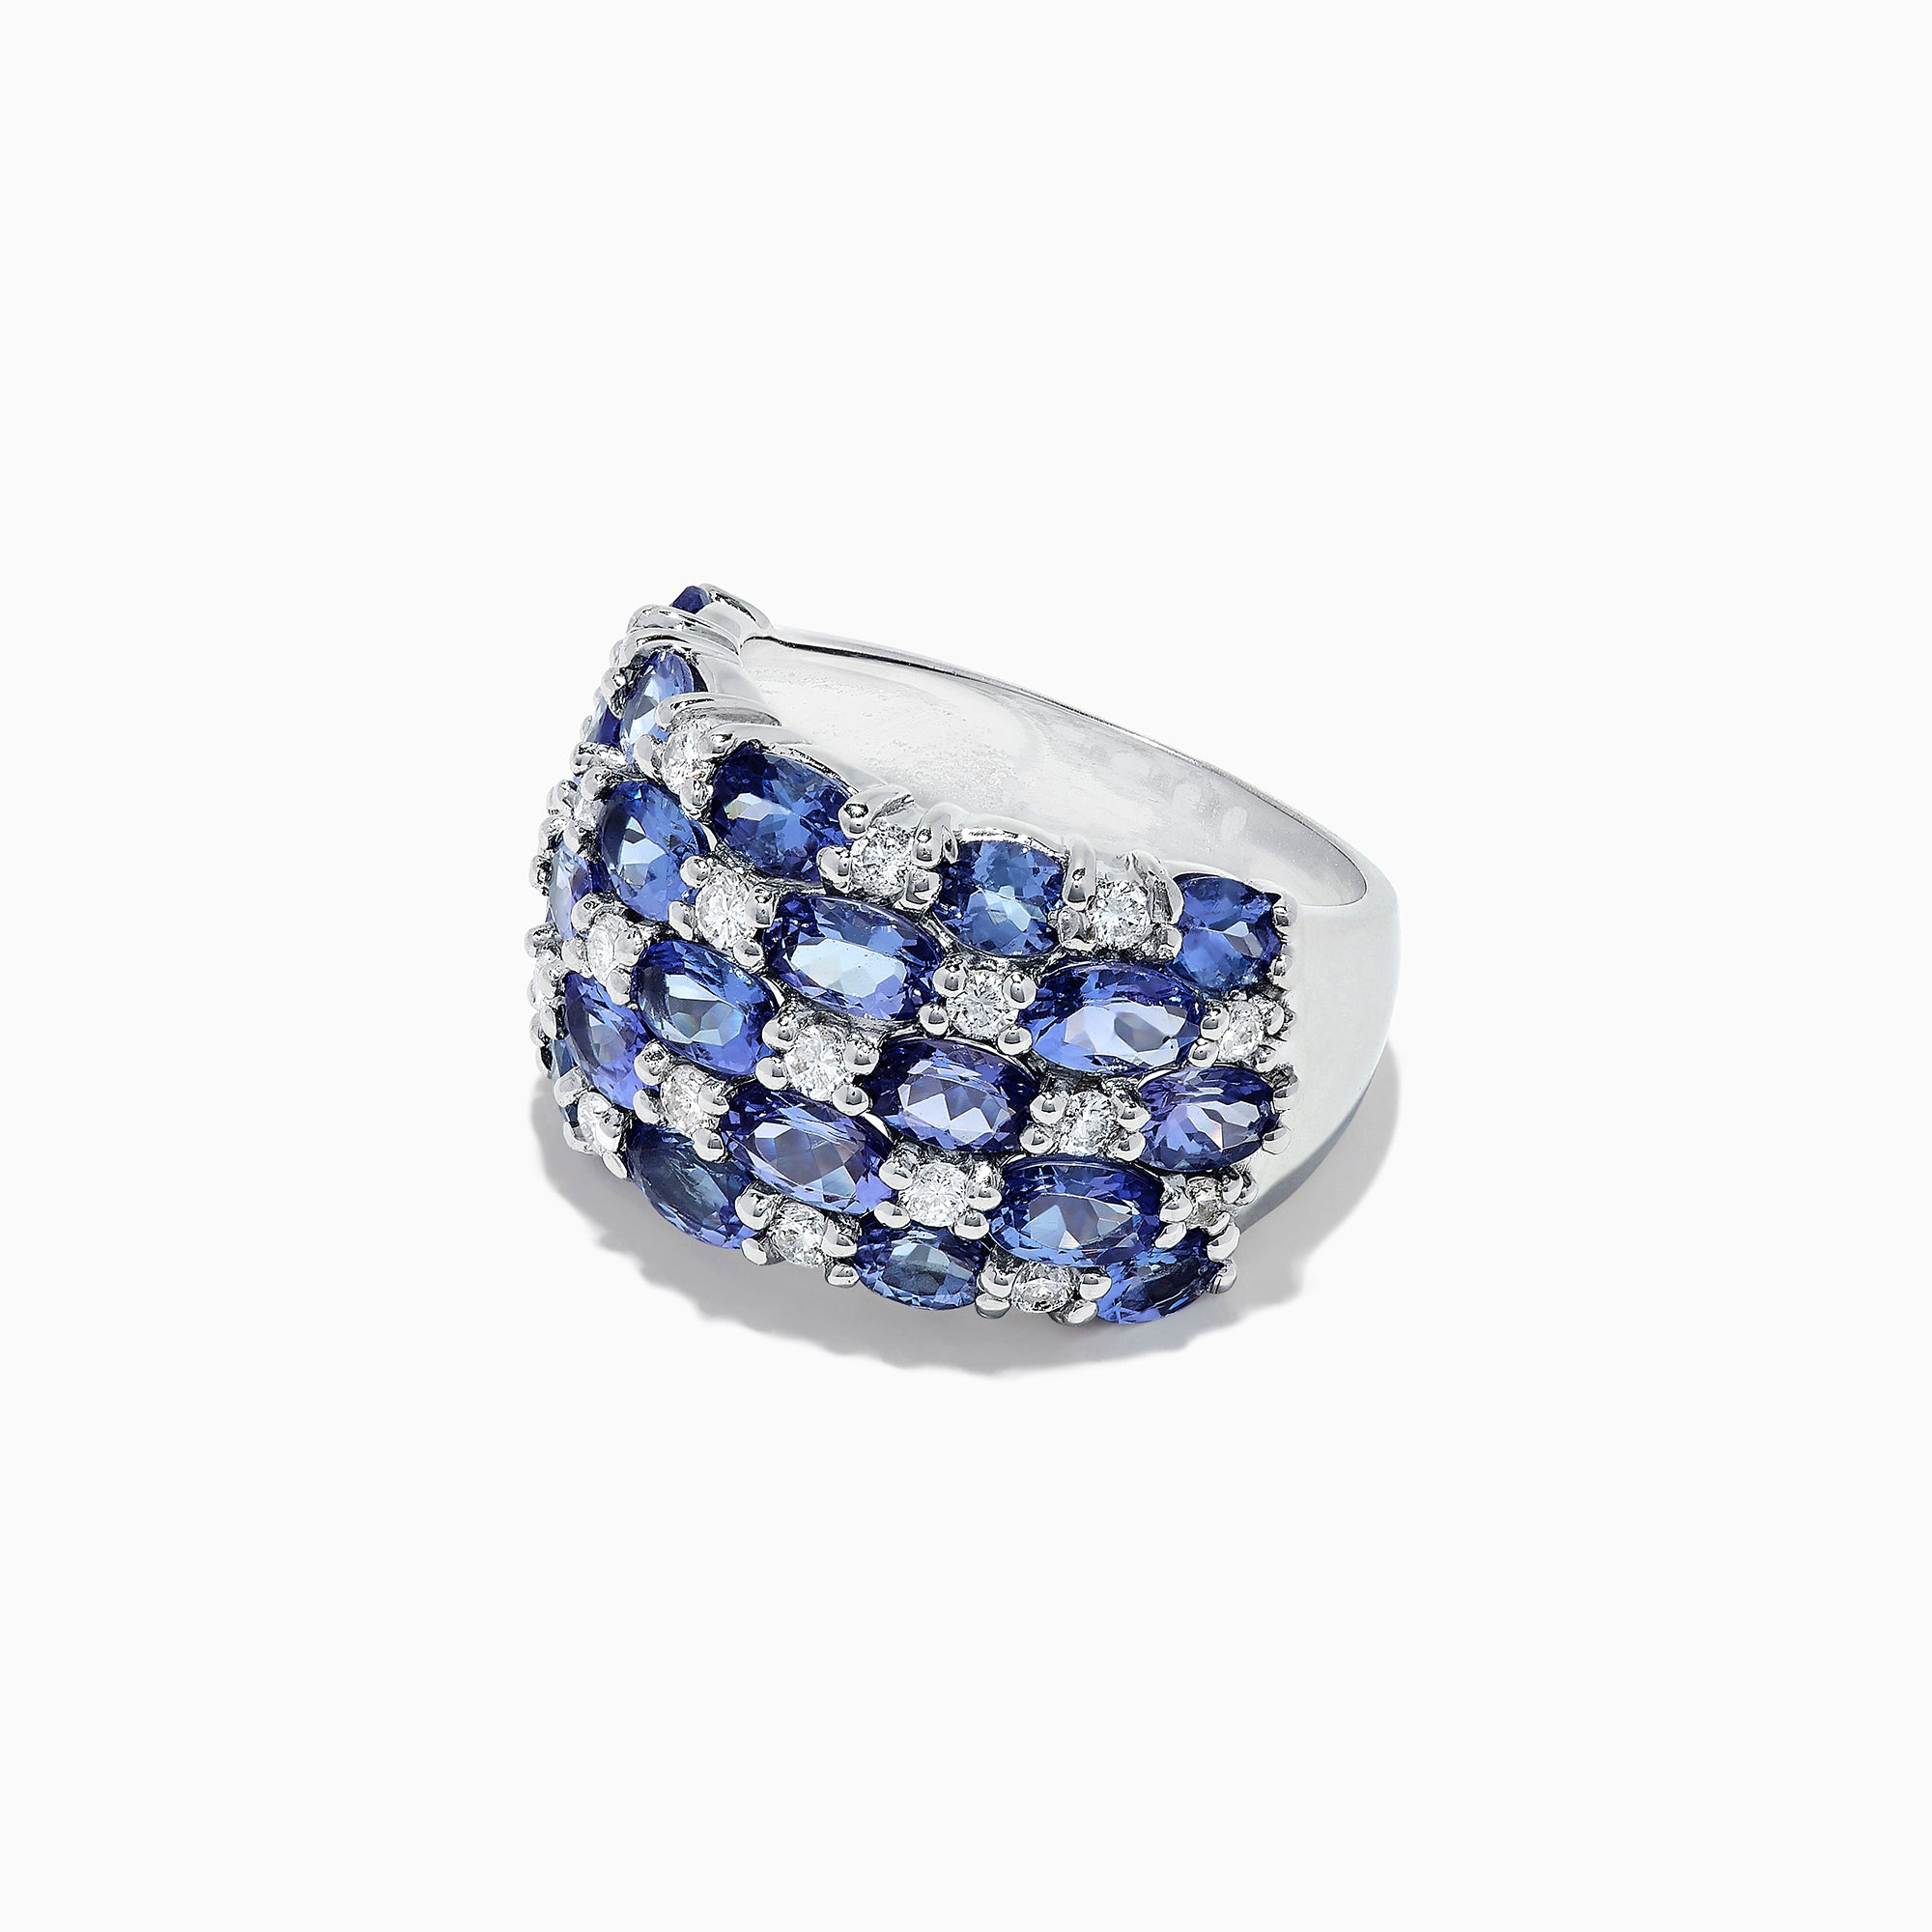 Effy 14K White Gold Tanzanite and Diamond Ring, 5.41 TCW